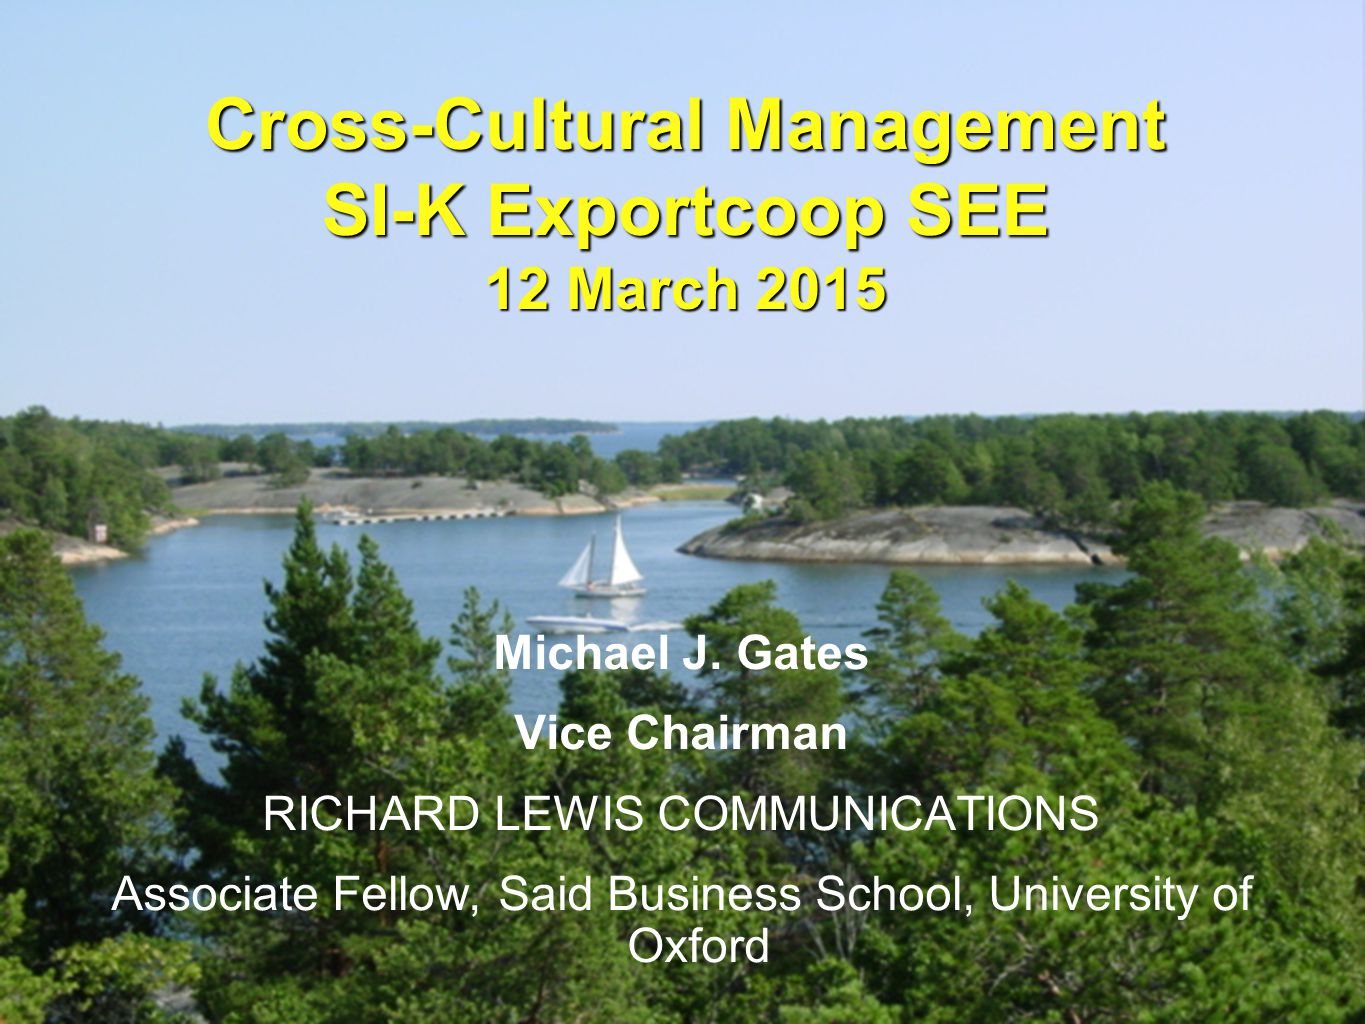 Cross-Cultural Management SI-K Exportcoop SEE 12 March 2015